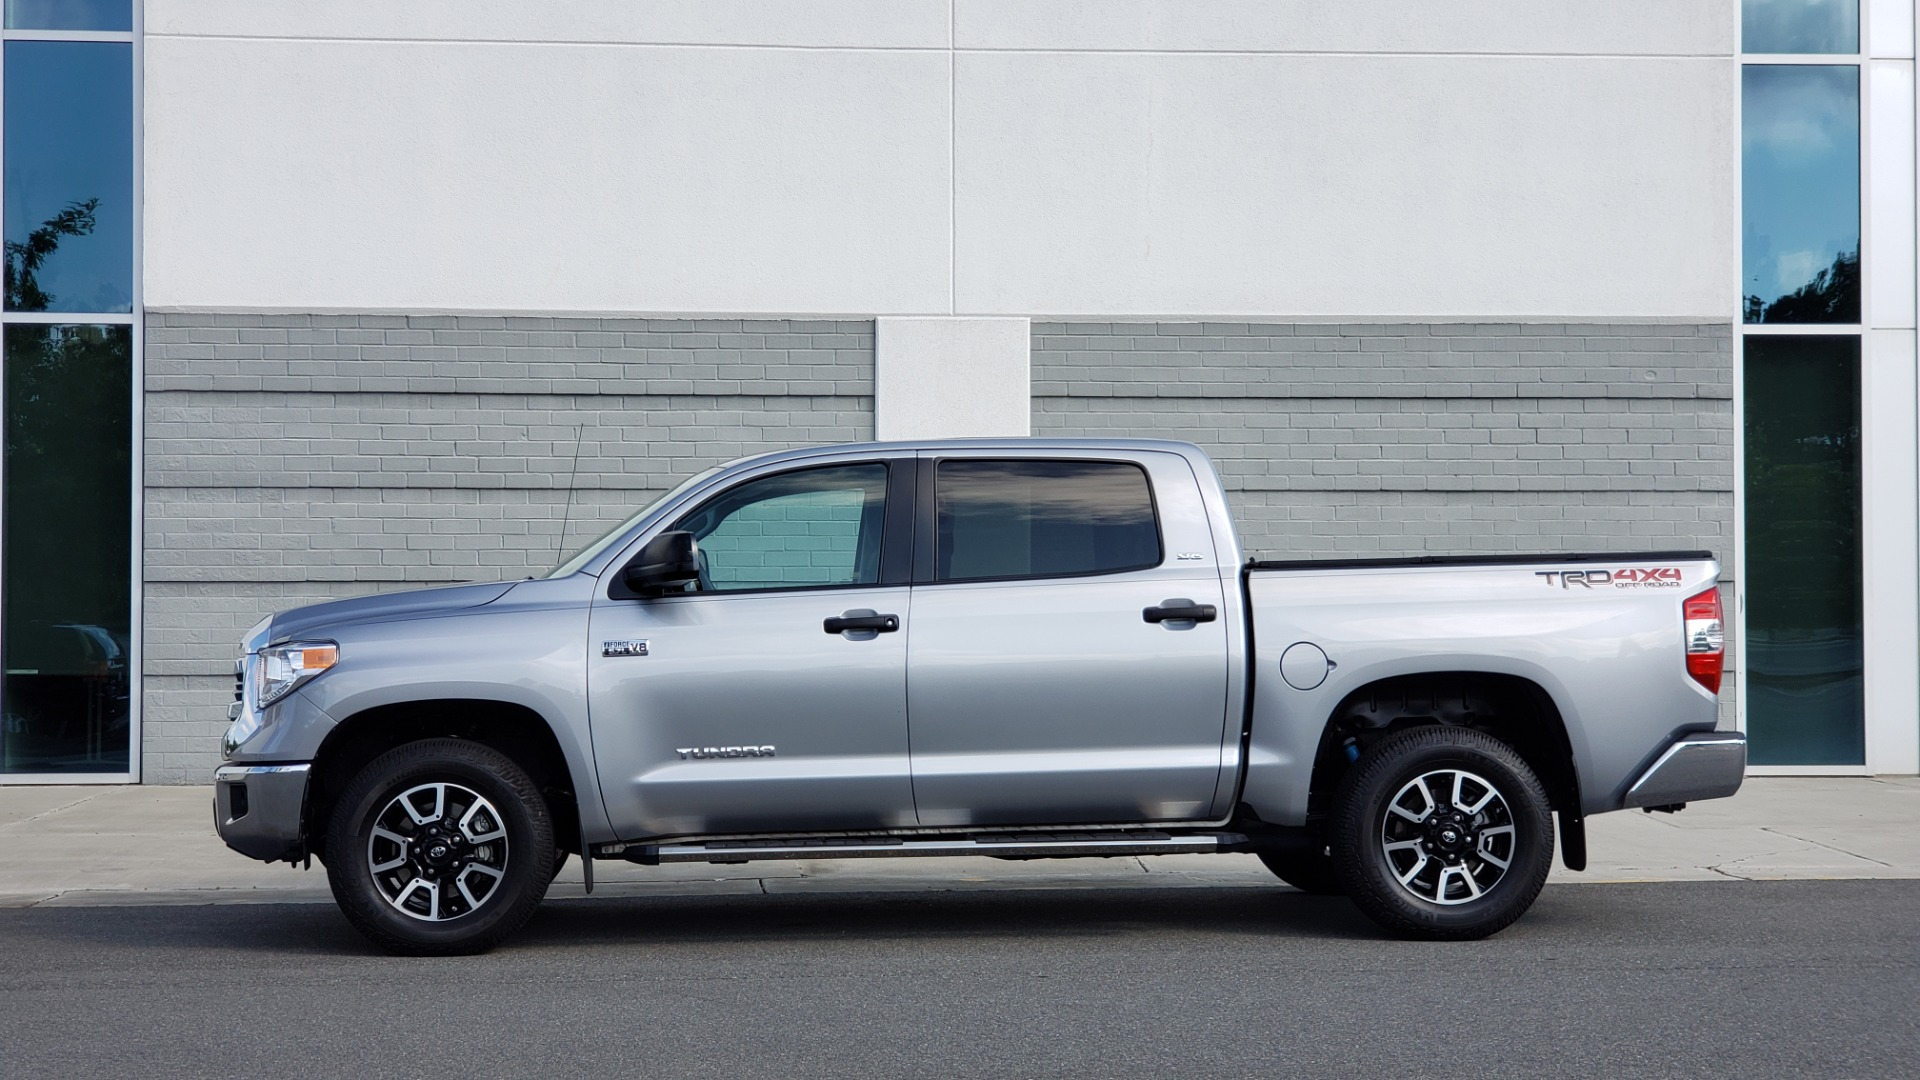 Used 2017 Toyota TUNDRA 4WD SR5 CREWMAX / 5.7L V8 / 6-SPD AUTO / NAV / REARVIEW for sale $44,395 at Formula Imports in Charlotte NC 28227 5